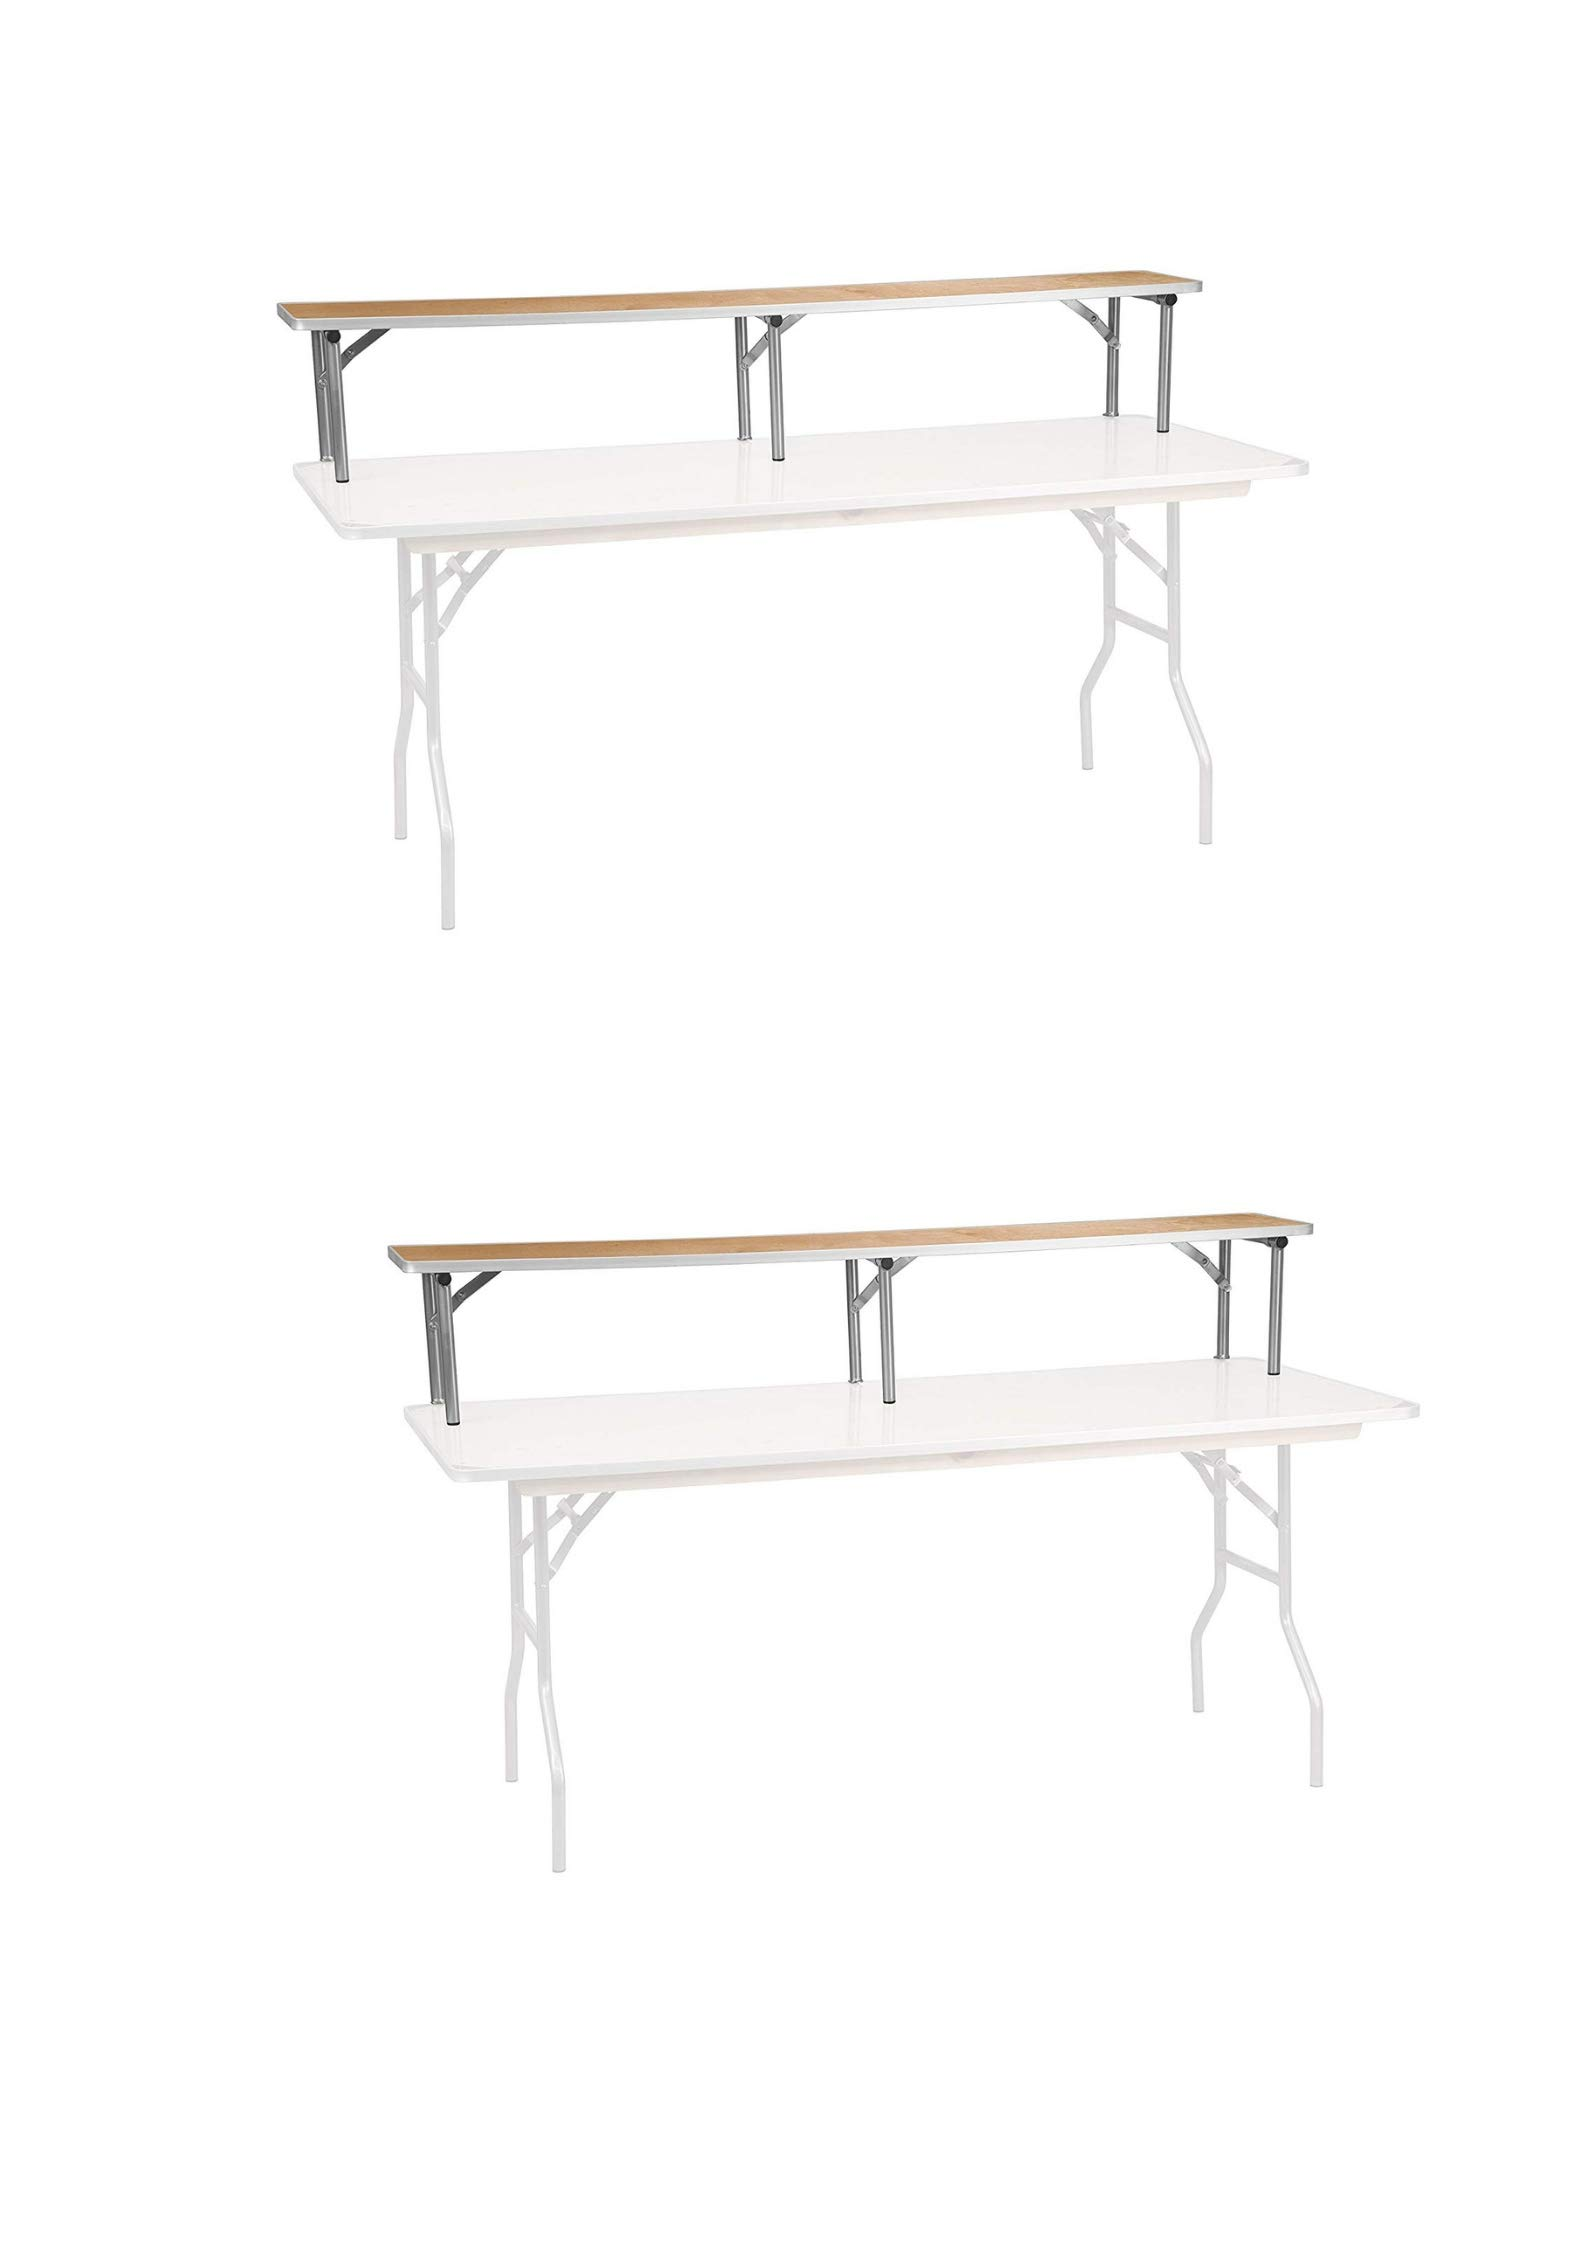 Flash Furniture 72'' x 12'' x 12'' Birchwood Bar Top Riser with Silver Legs (2 Pack, Brown 72'' W x 11.75'' D x 12'' H) by Flash Furniture (Image #1)